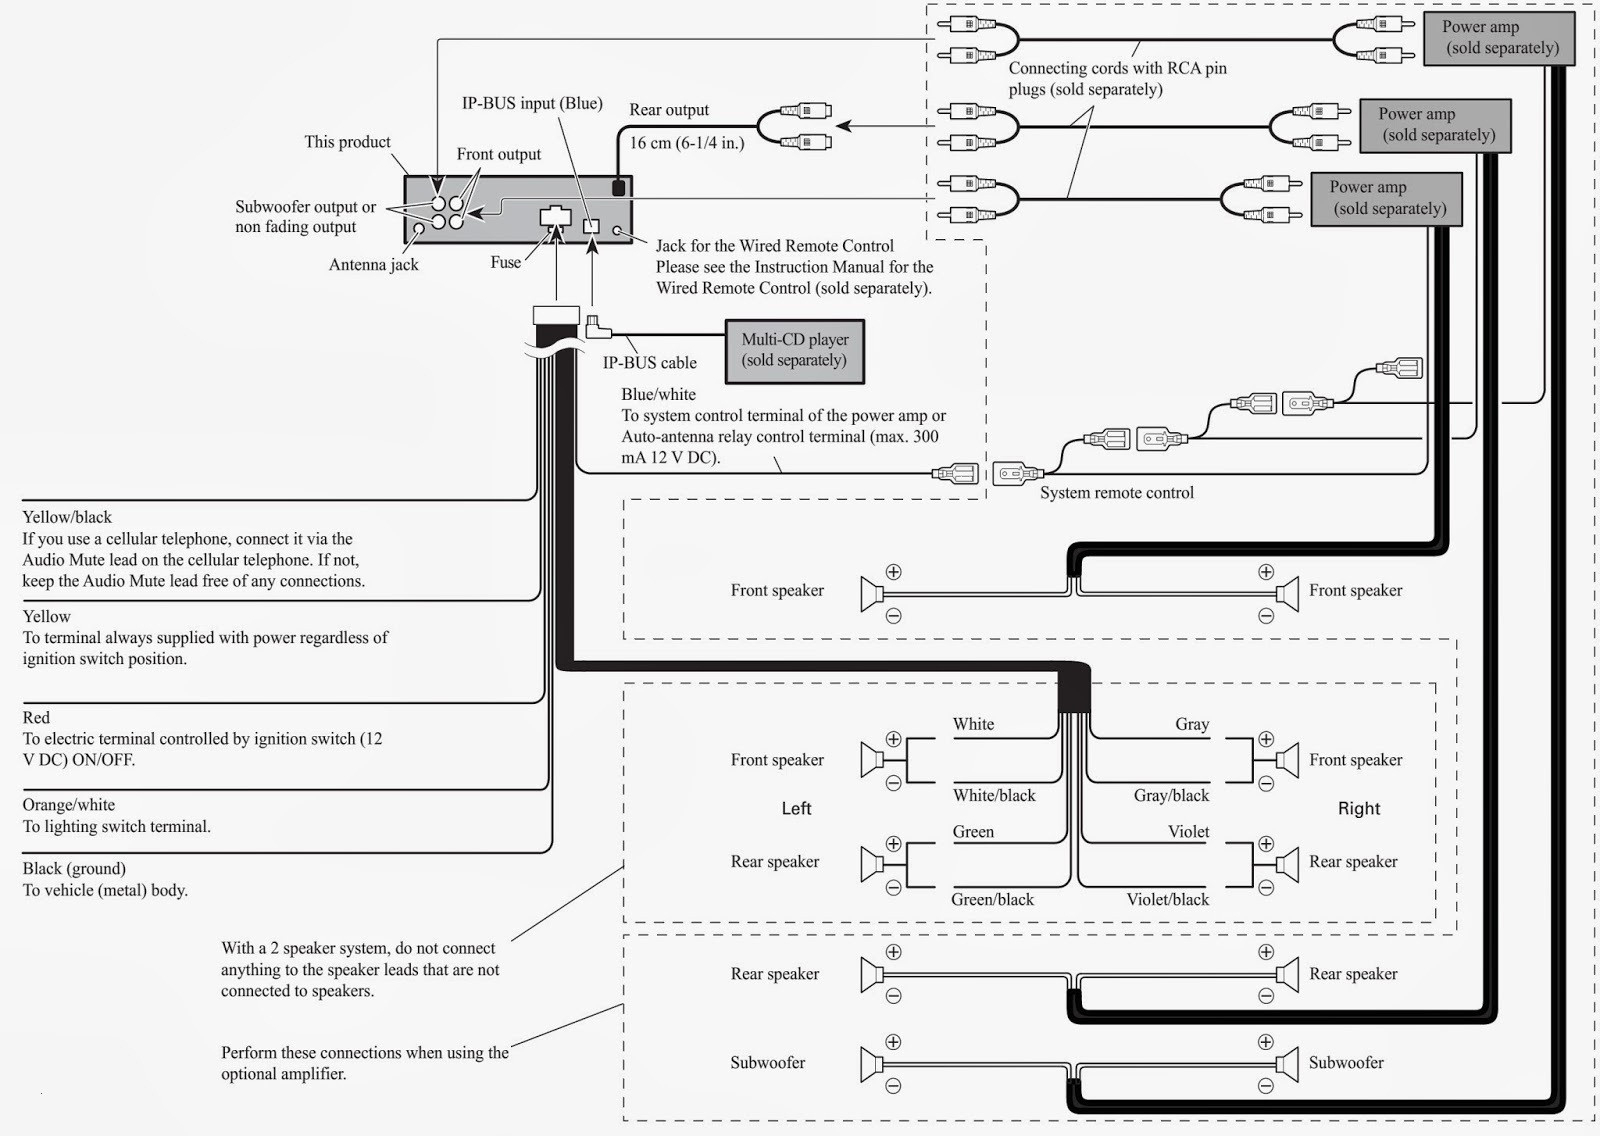 Pioneer Deh P3000 Wiring Harness Diagram - All Wiring Diagram Data - Pioneer Cd Player Wiring Diagram